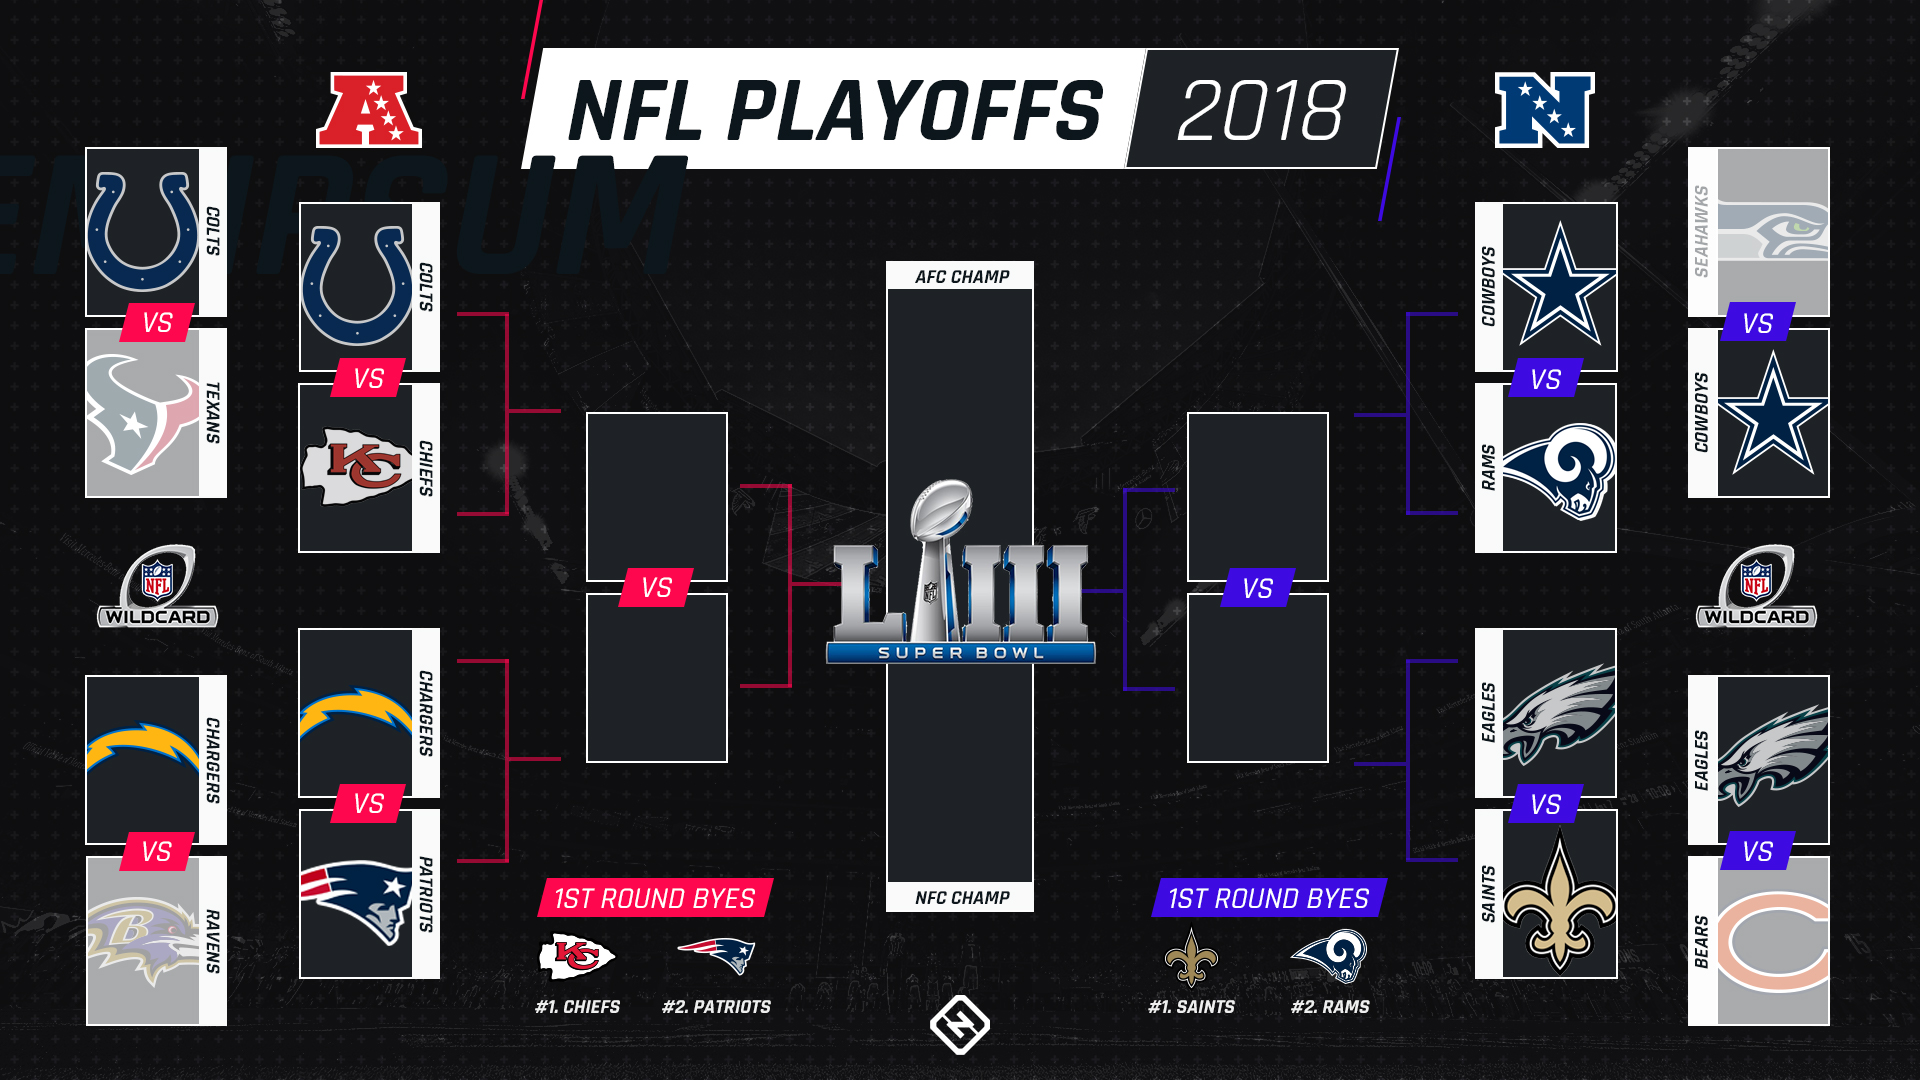 Nba Playoff Picture Standings Updated Schedules And More: NFL Playoff Bracket: Divisional Playoff Matchups, Schedule